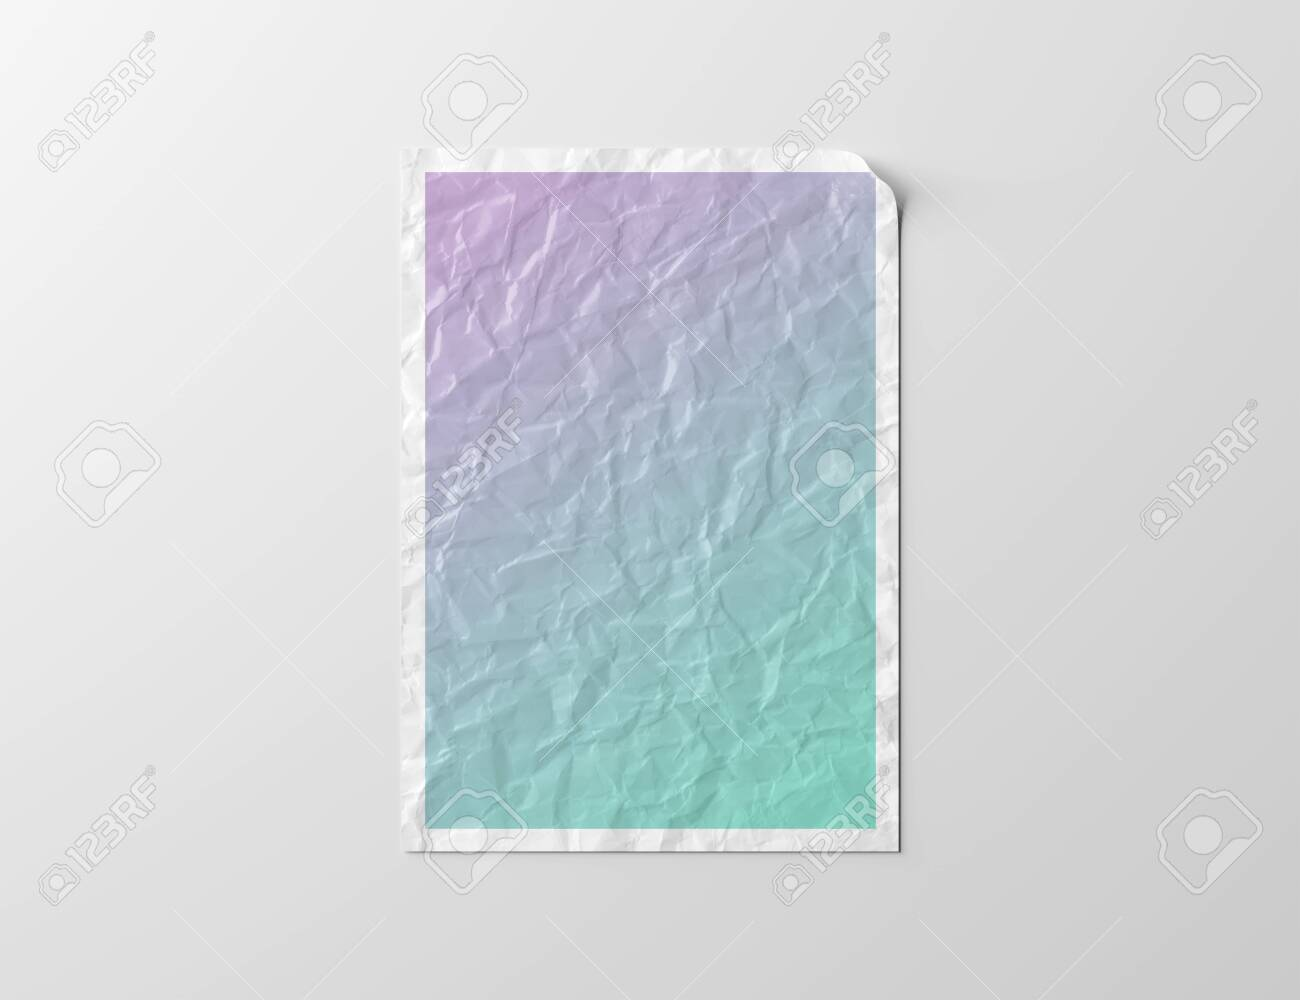 Crumpled paper poster isolated on white background Mockup 3D rendering - 150518149